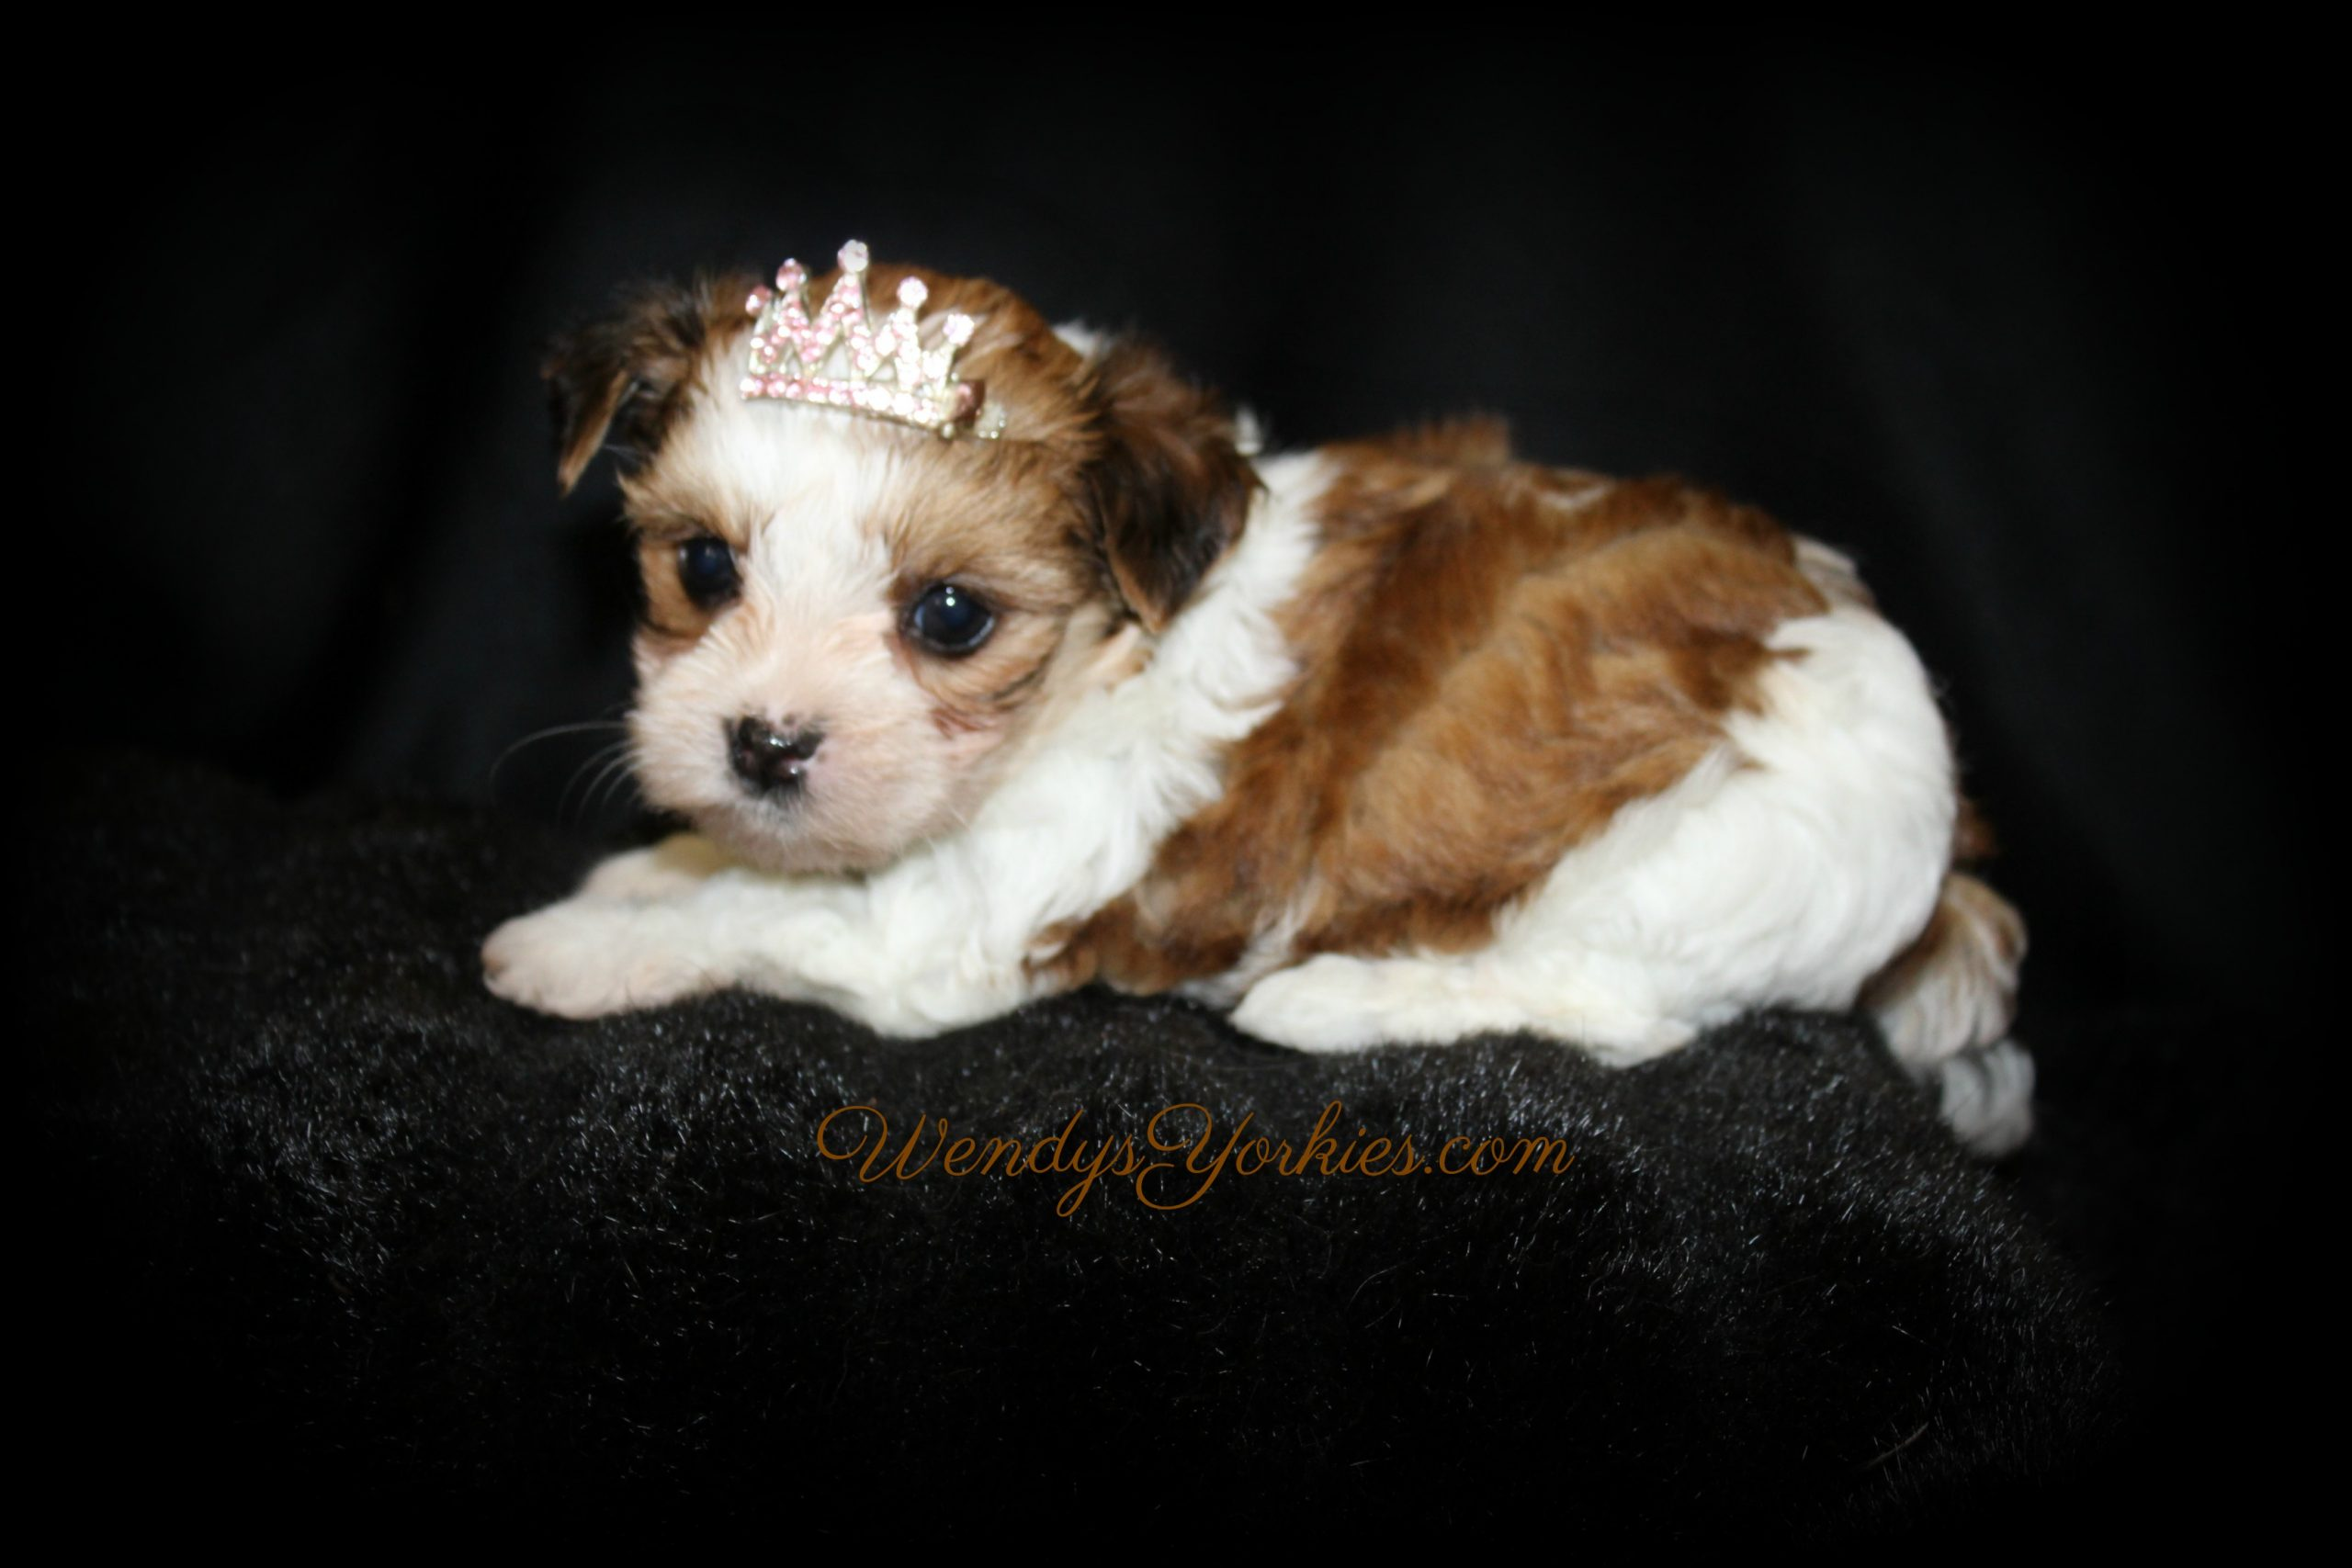 Female Teacup Yorkie Puppies For Sale In Tx Wendys Yorkies